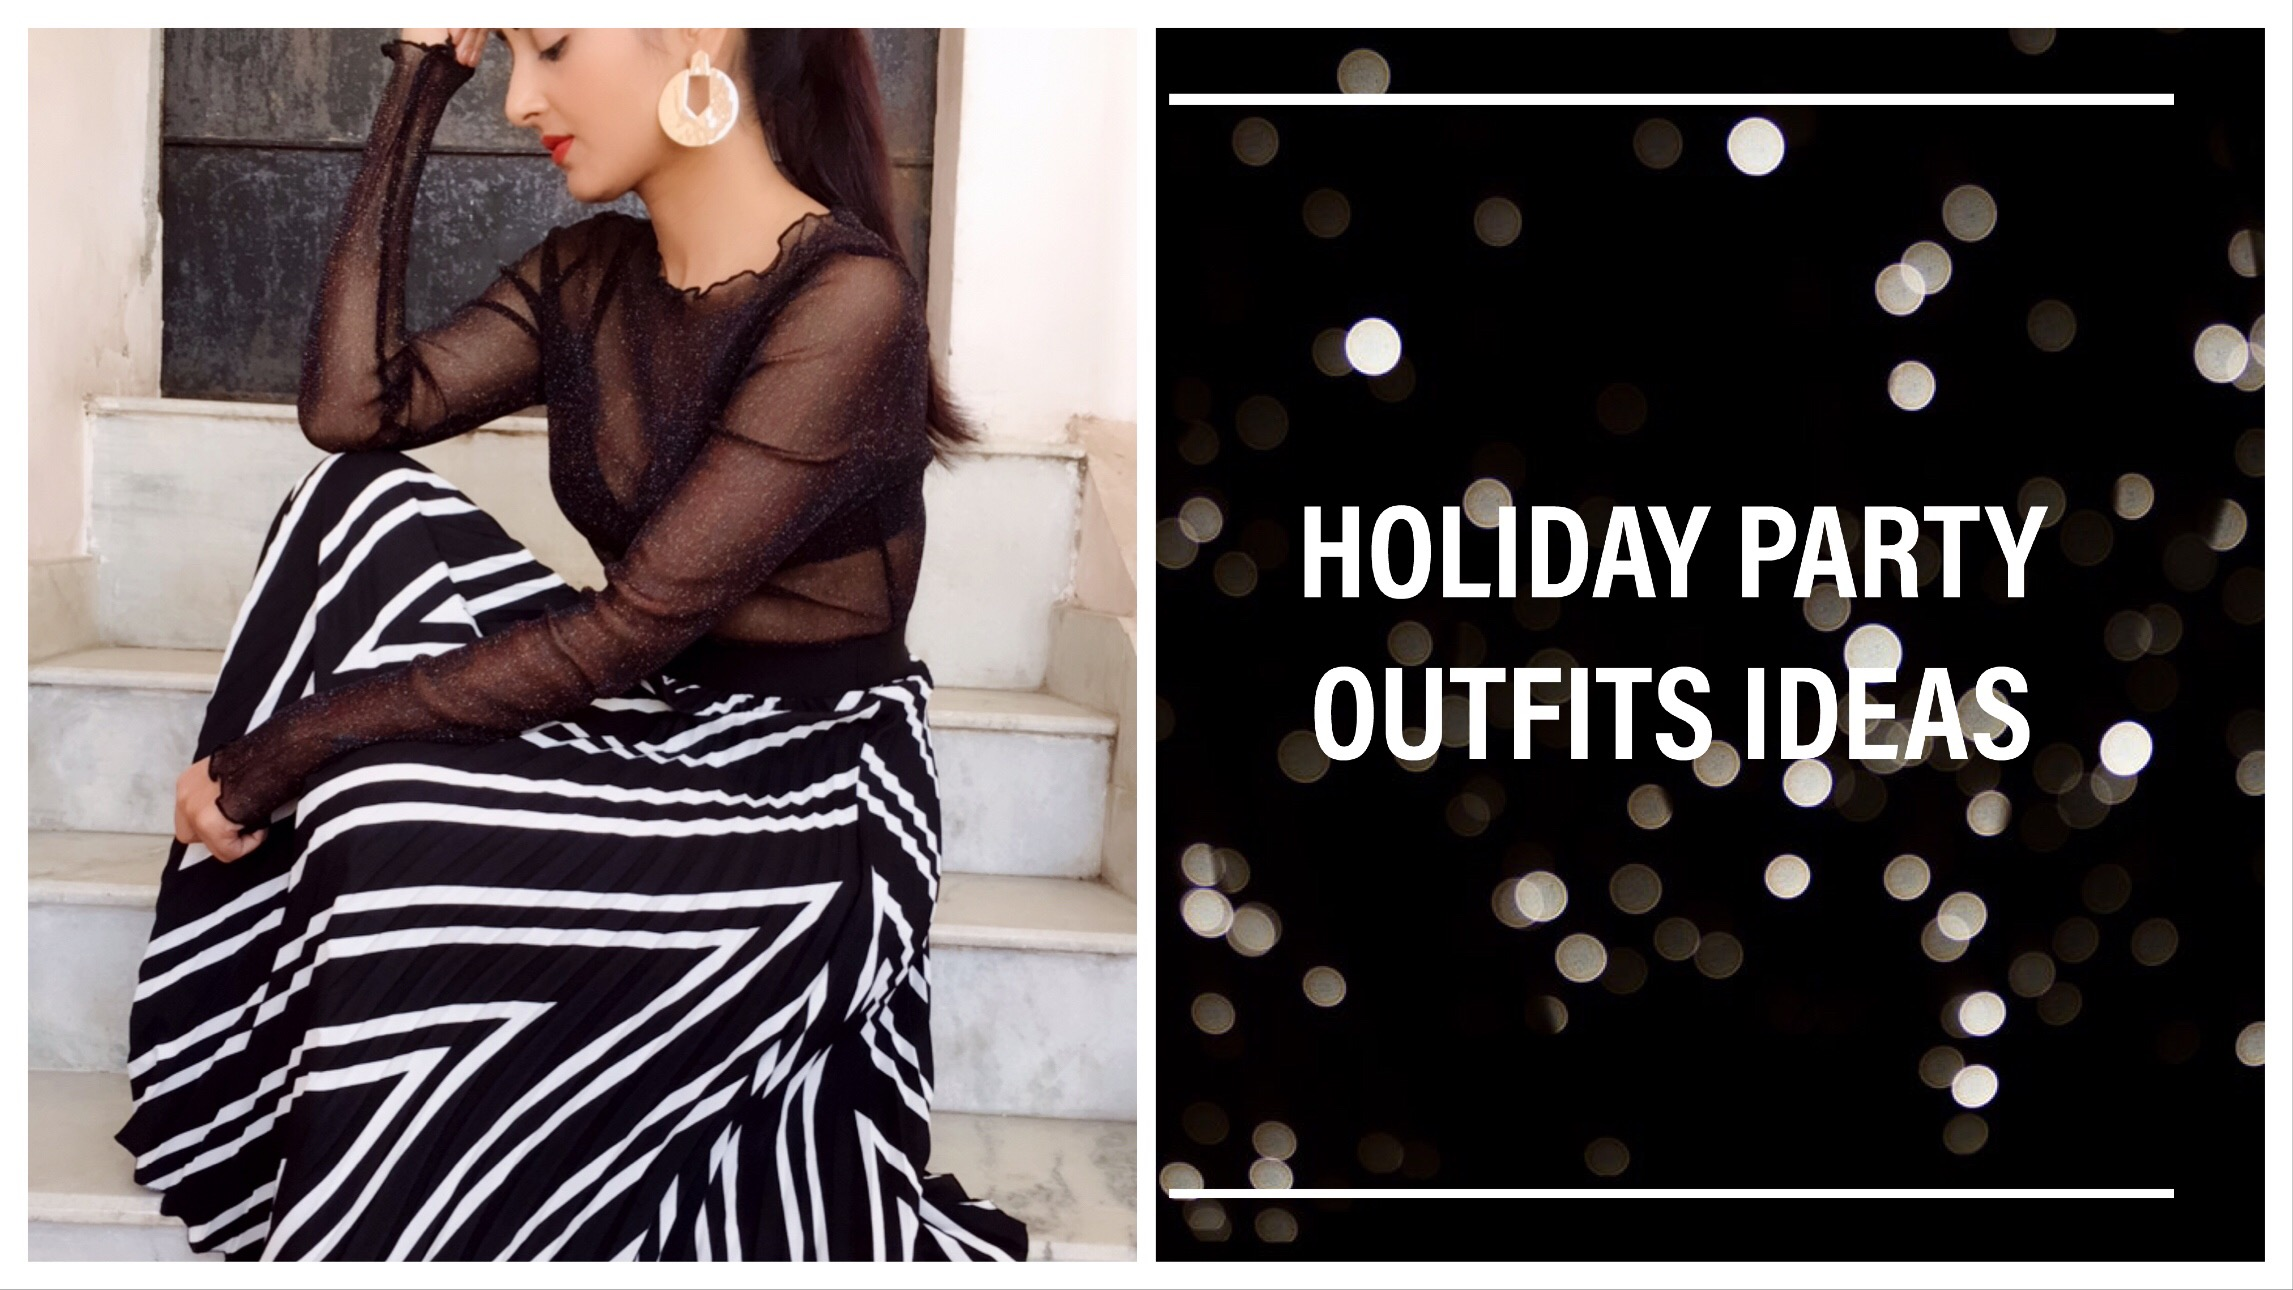 Holiday party outfit ideas